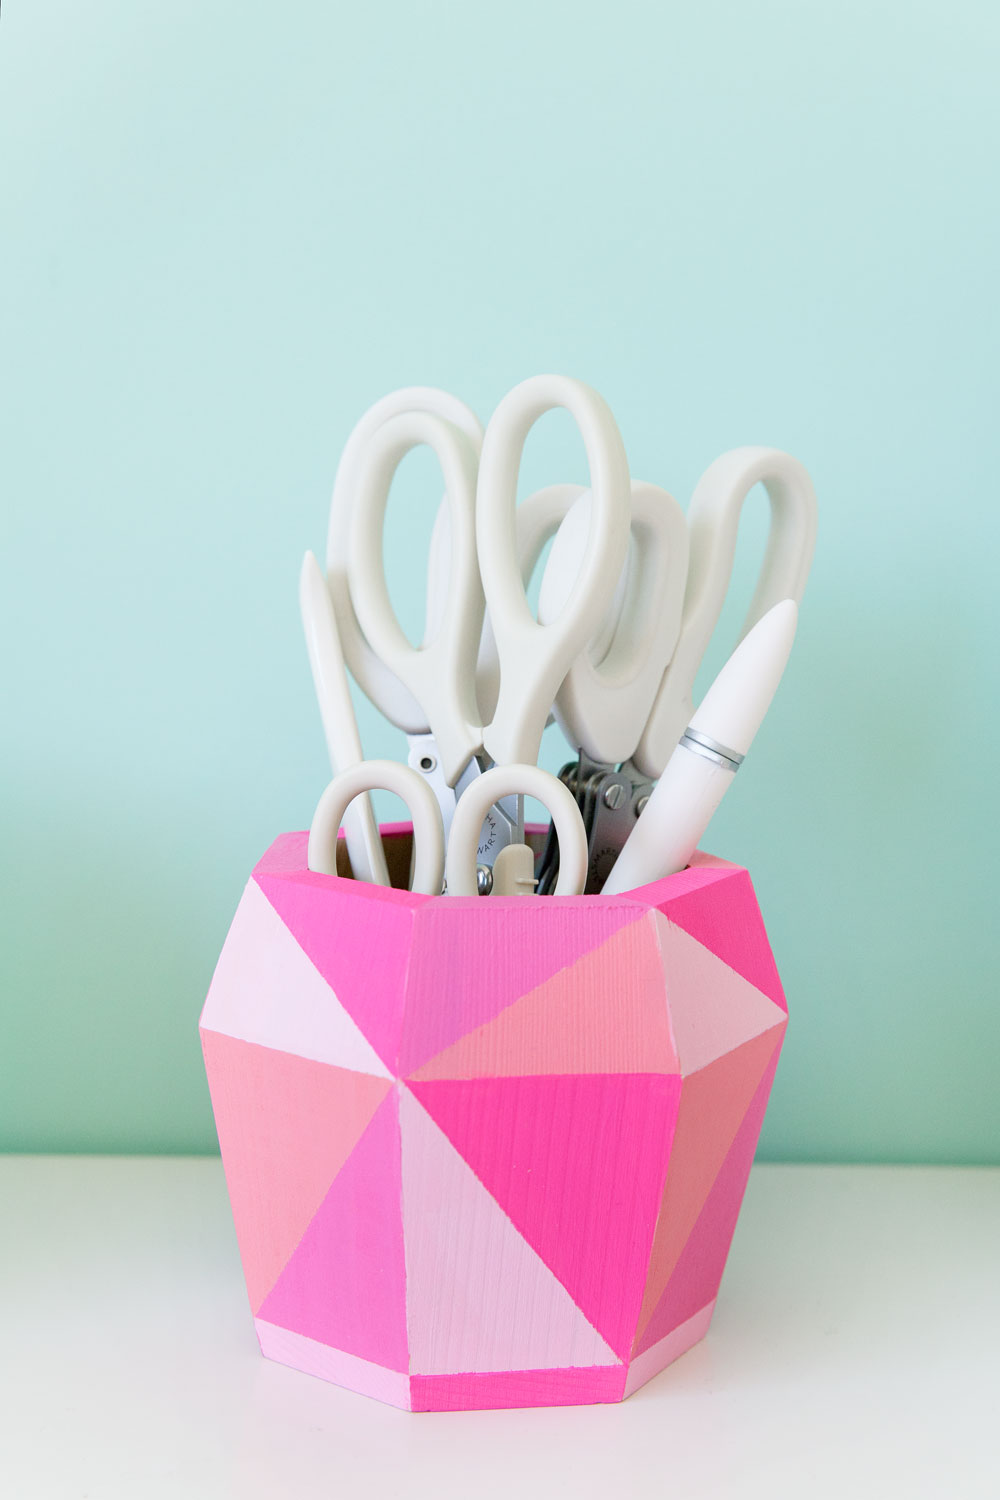 colorful-painted-DIY-geo-scissor-holder-for-your-desk-or-office